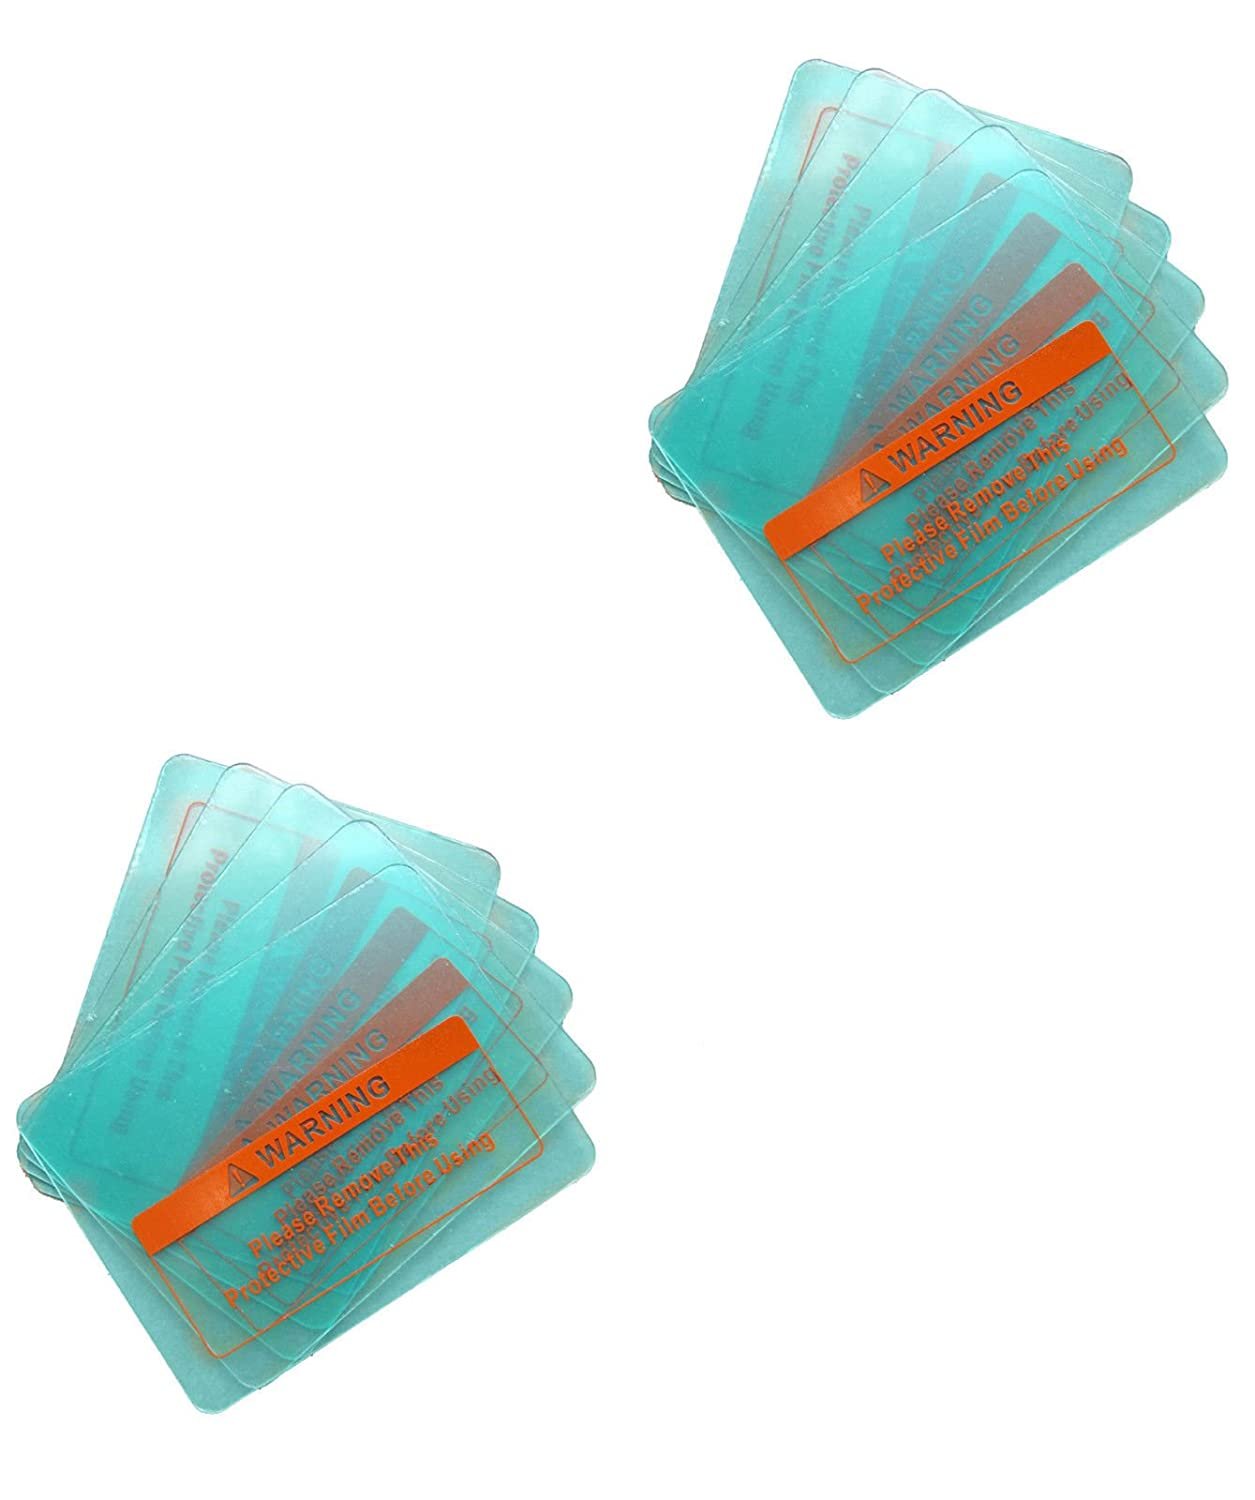 10 X PC Transparent//Clear Welding Helmet Cover Lens Protection Plate 4 Size